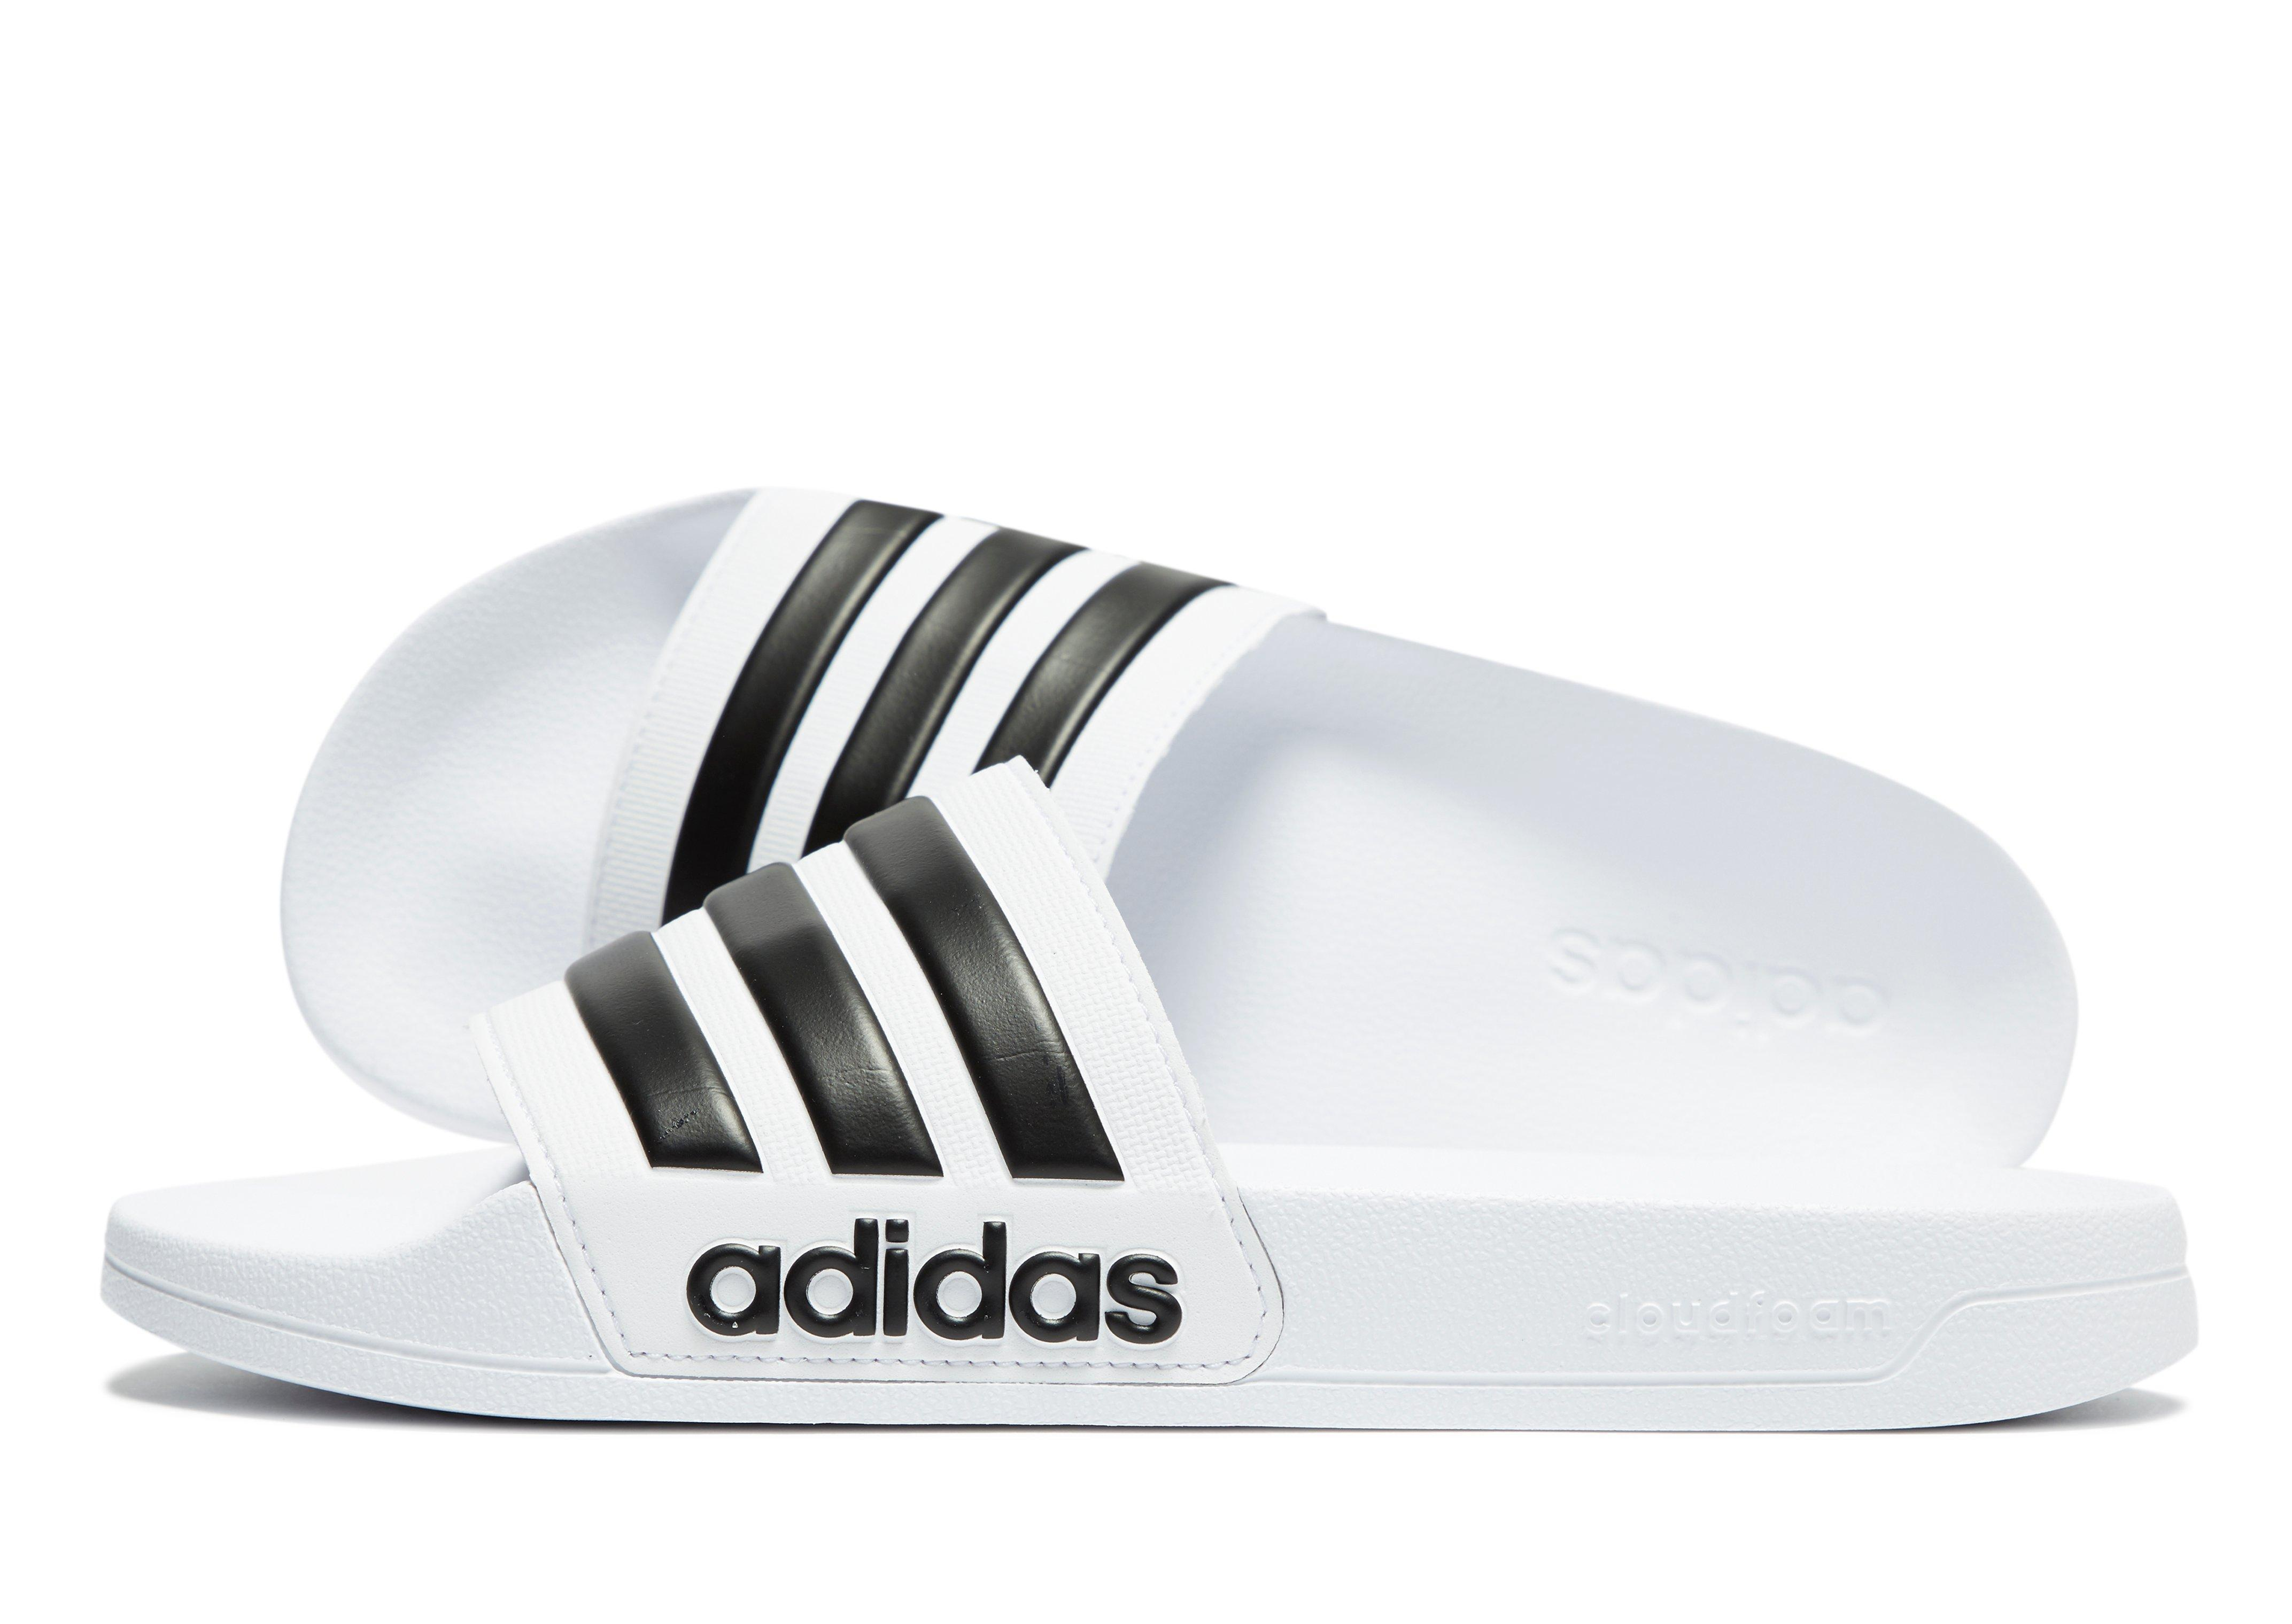 fc7d970a8721e0 Lyst - adidas Cloudfoam Adilette Slides in White for Men